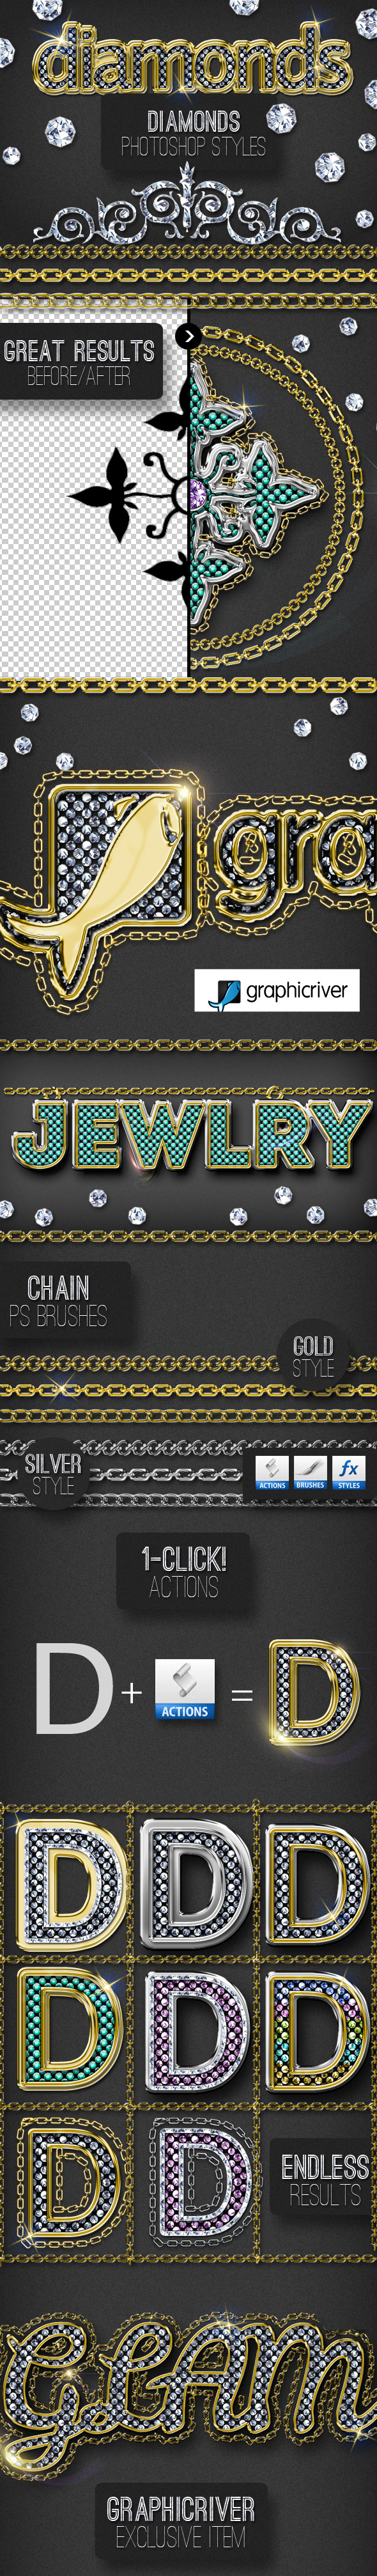 GraphicRiver Bling Bling Diamond Photoshop Style Creator 10250581